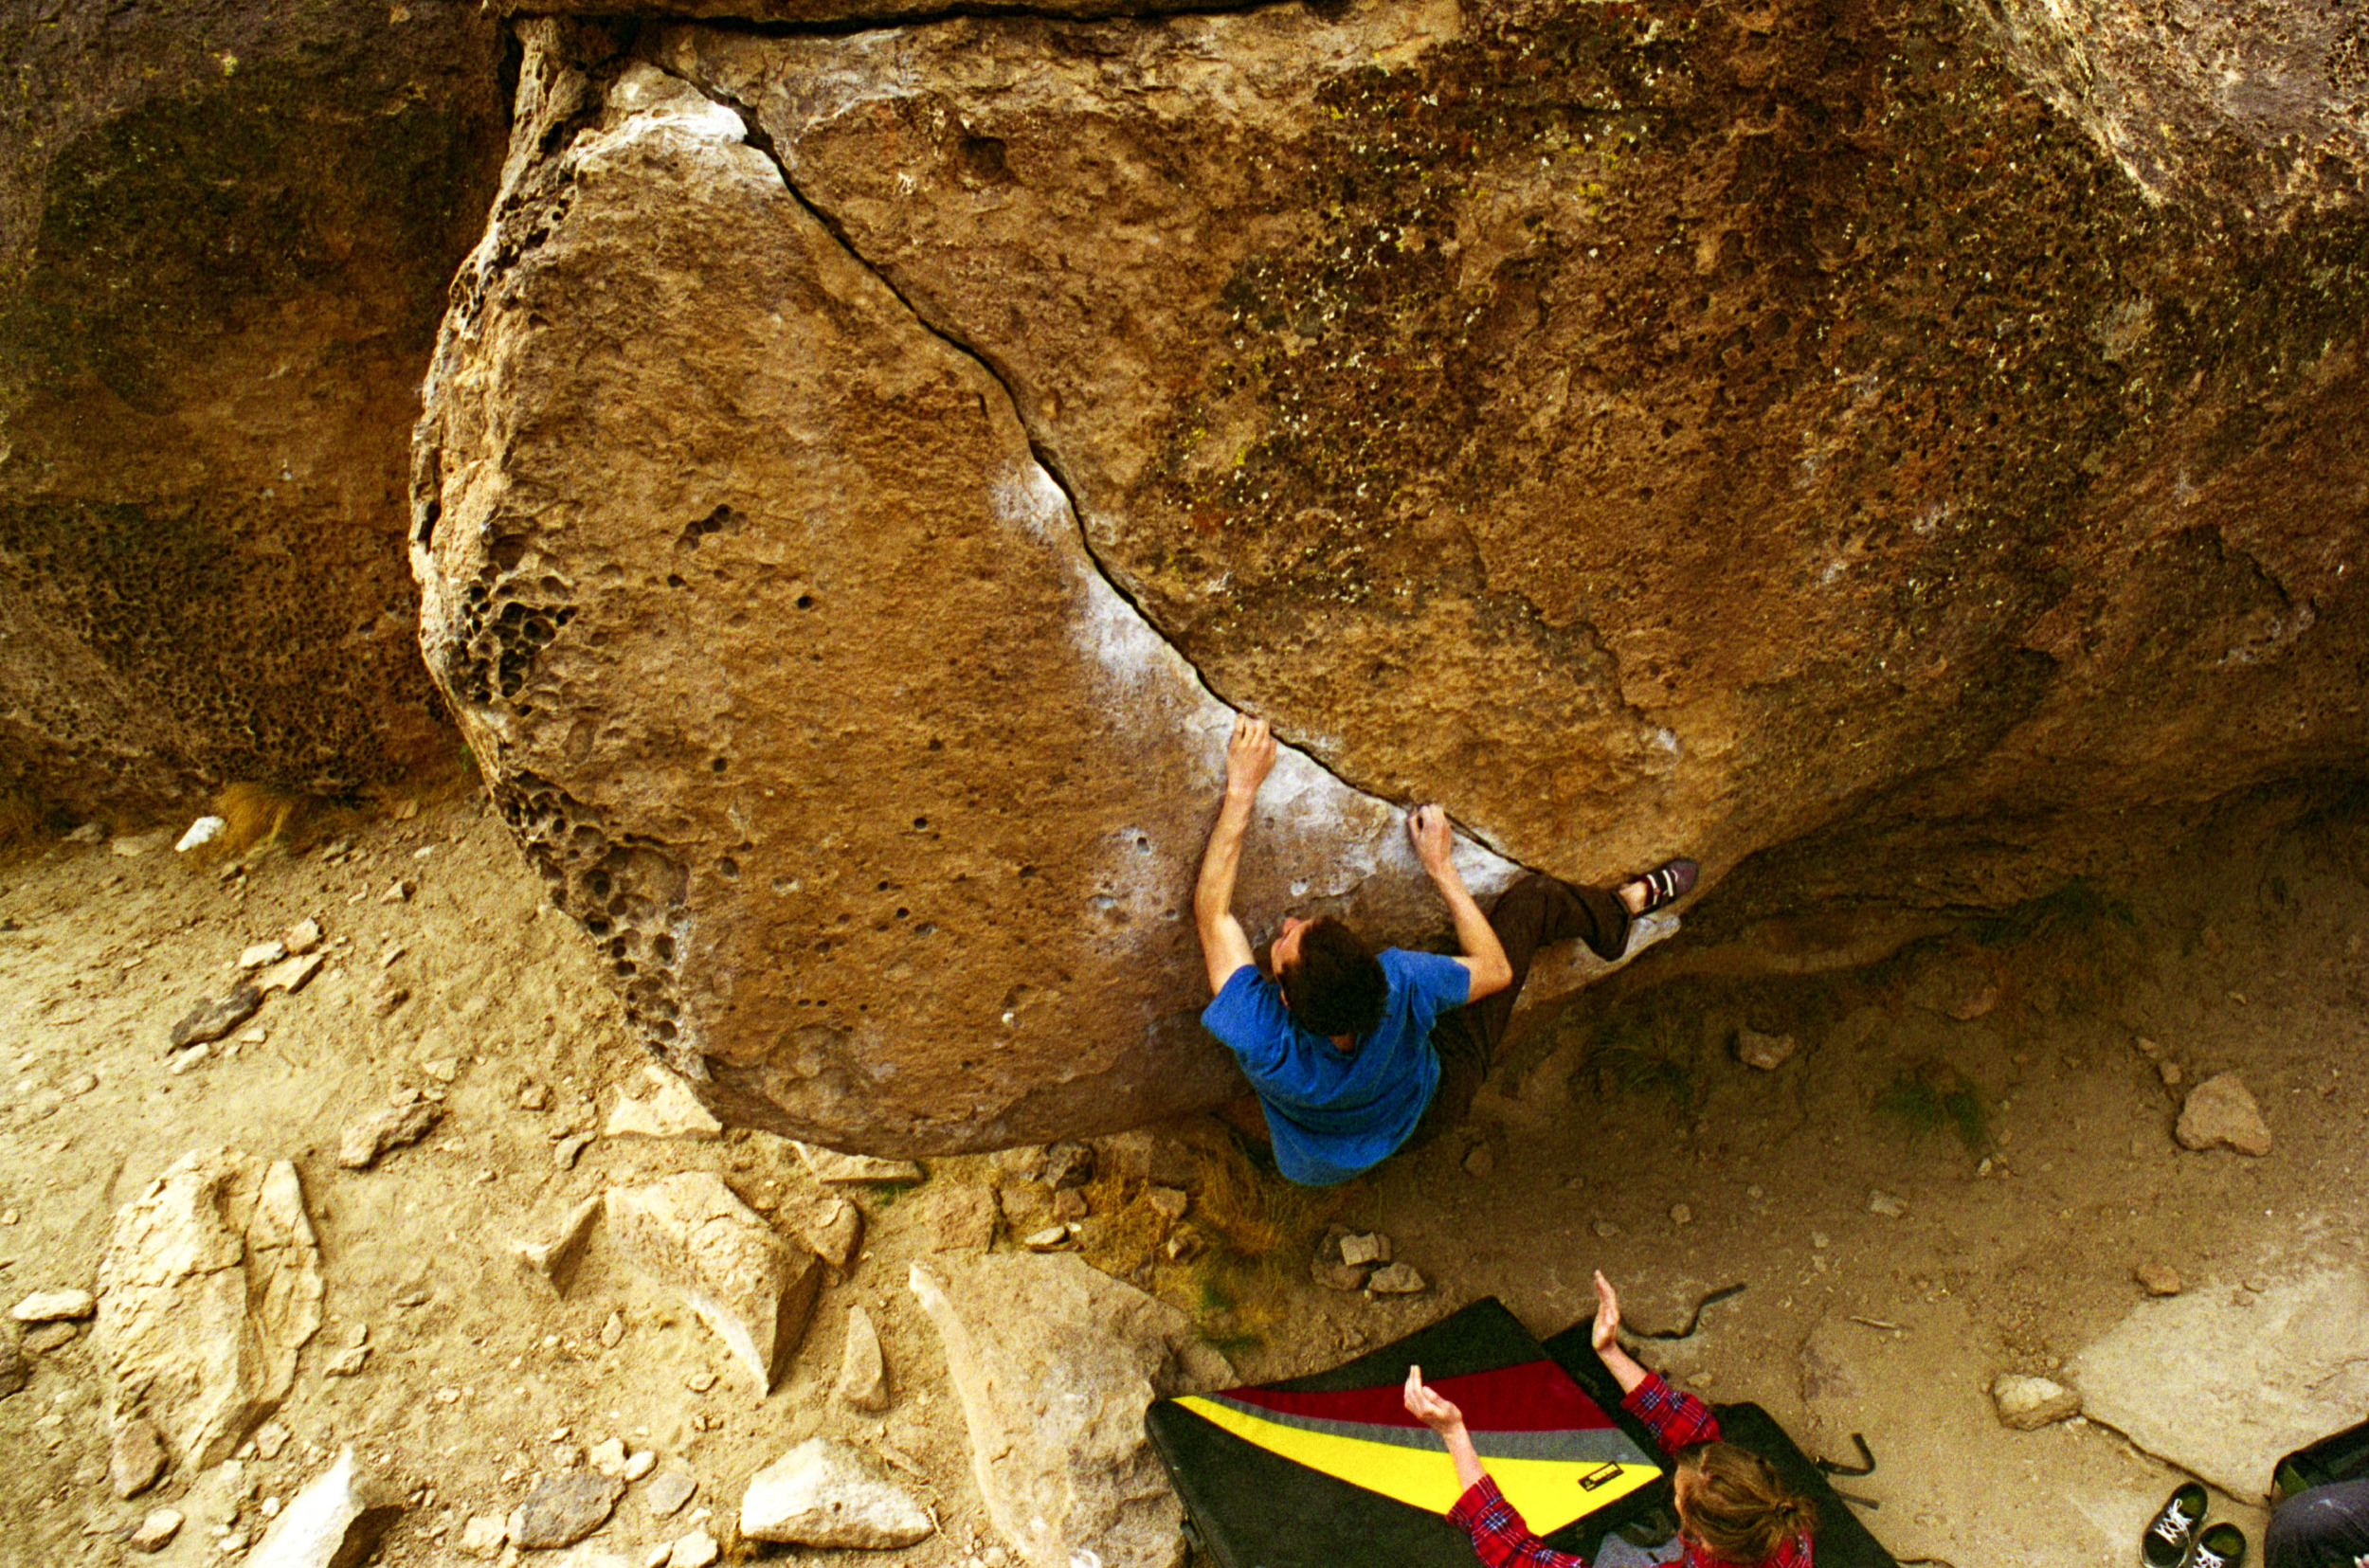 Micah holding on and fighting the barndoor on Rio's Crack, V6, in the Sad's